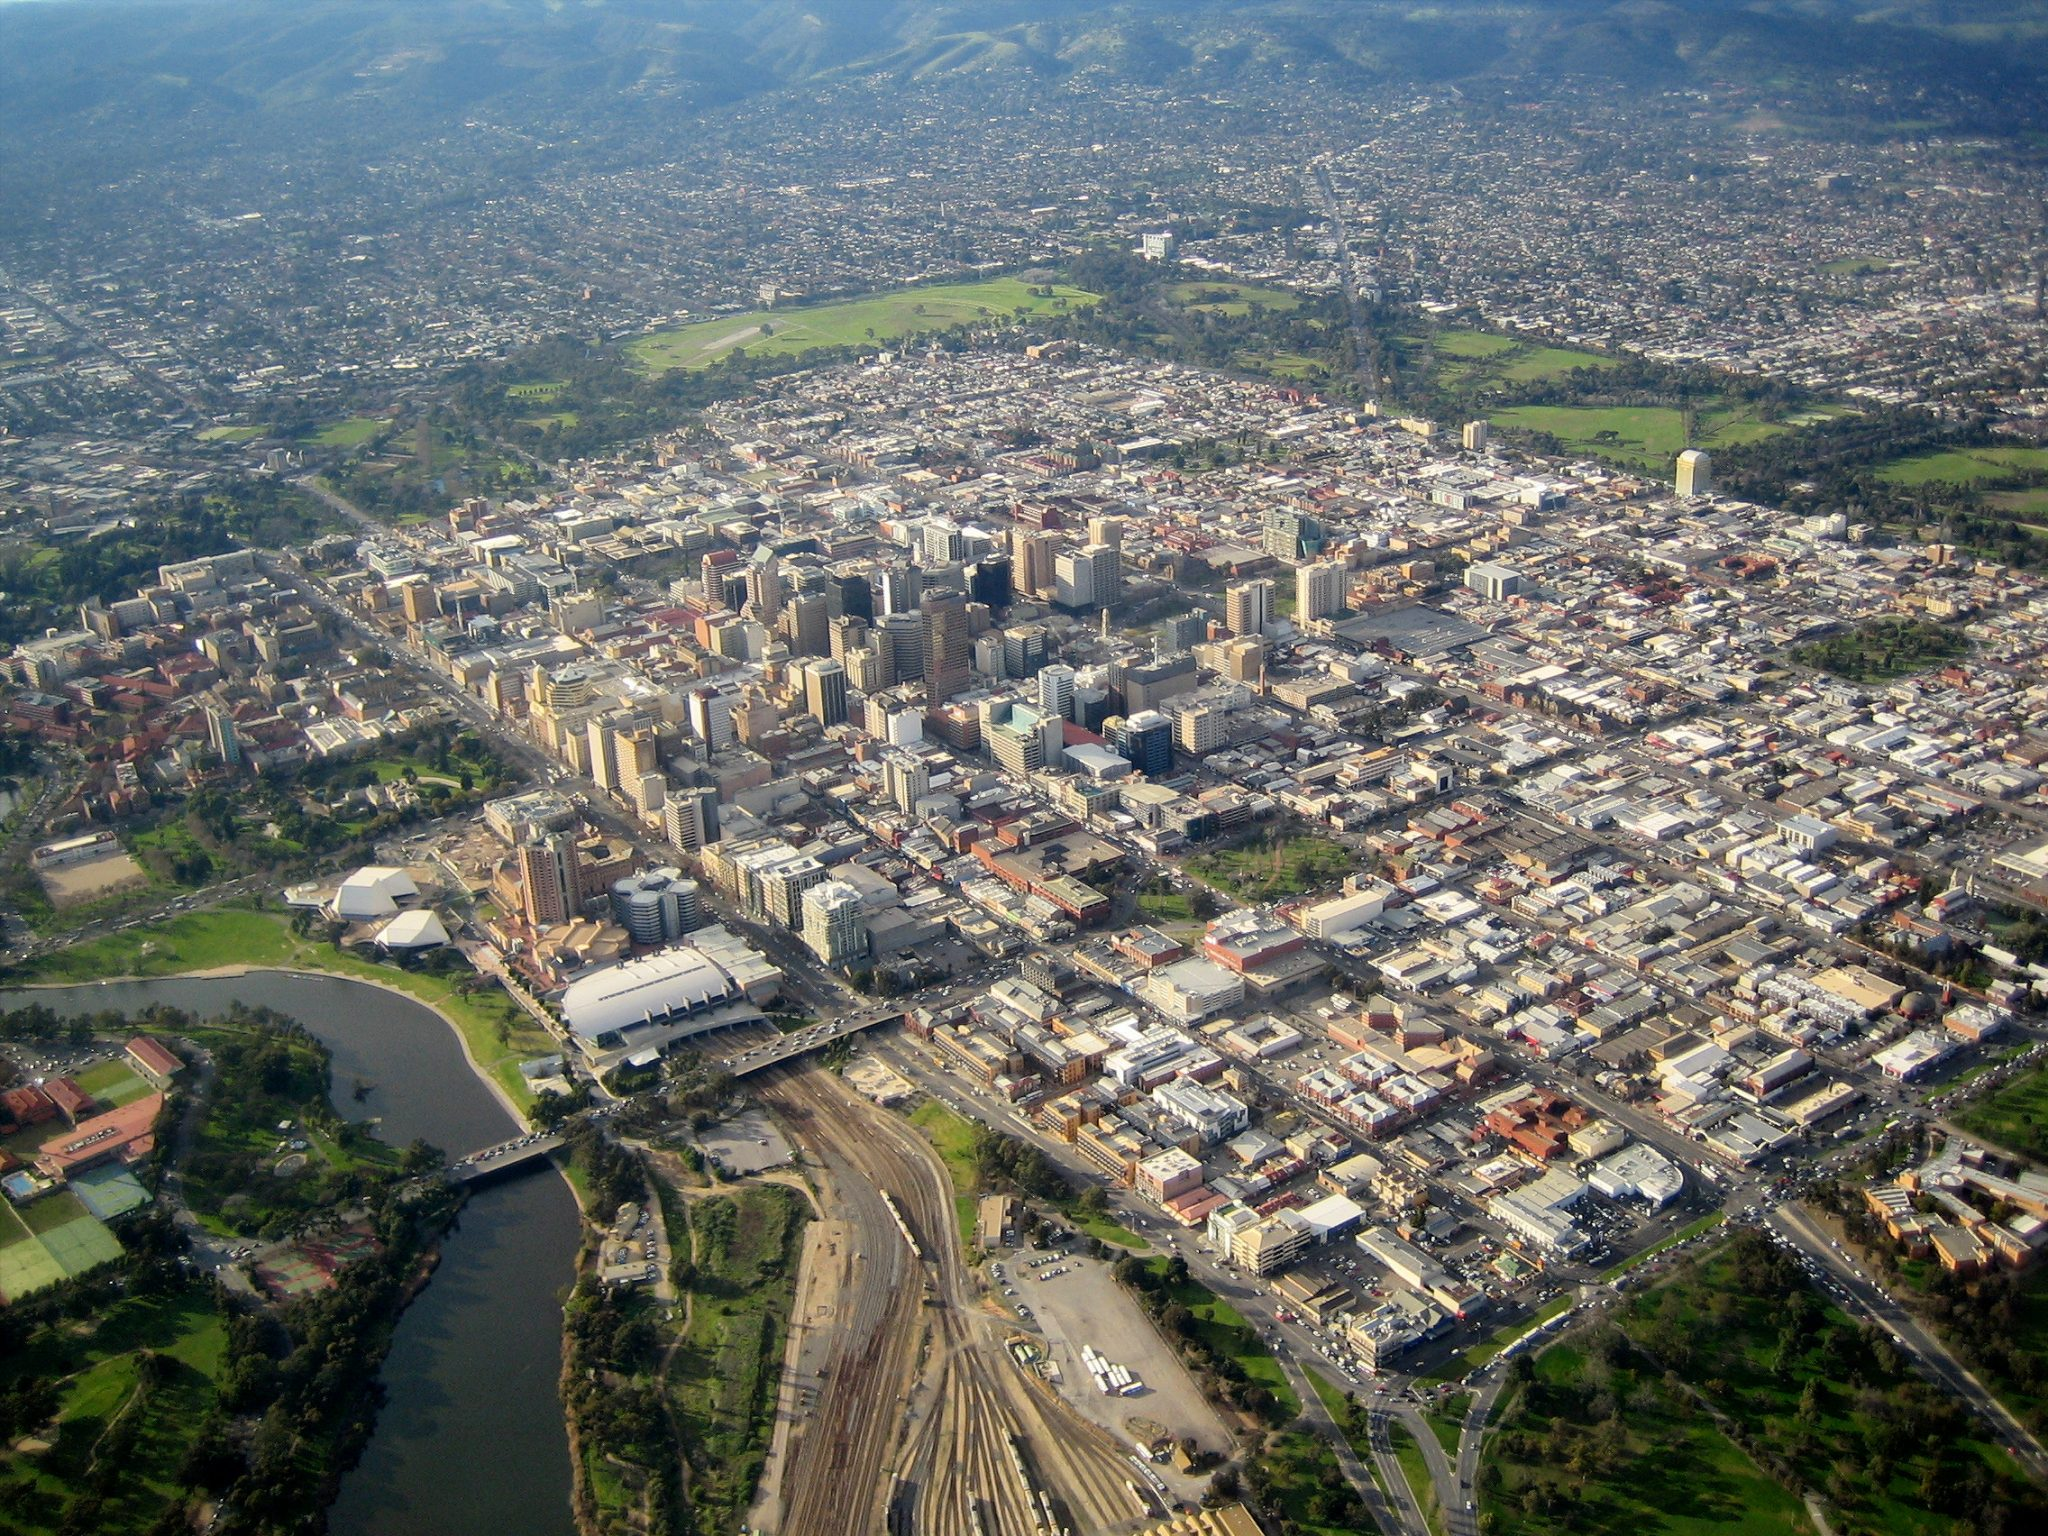 Aerial view of Adelaide - Baldwin Financial Services - Seaton Financial Advisers